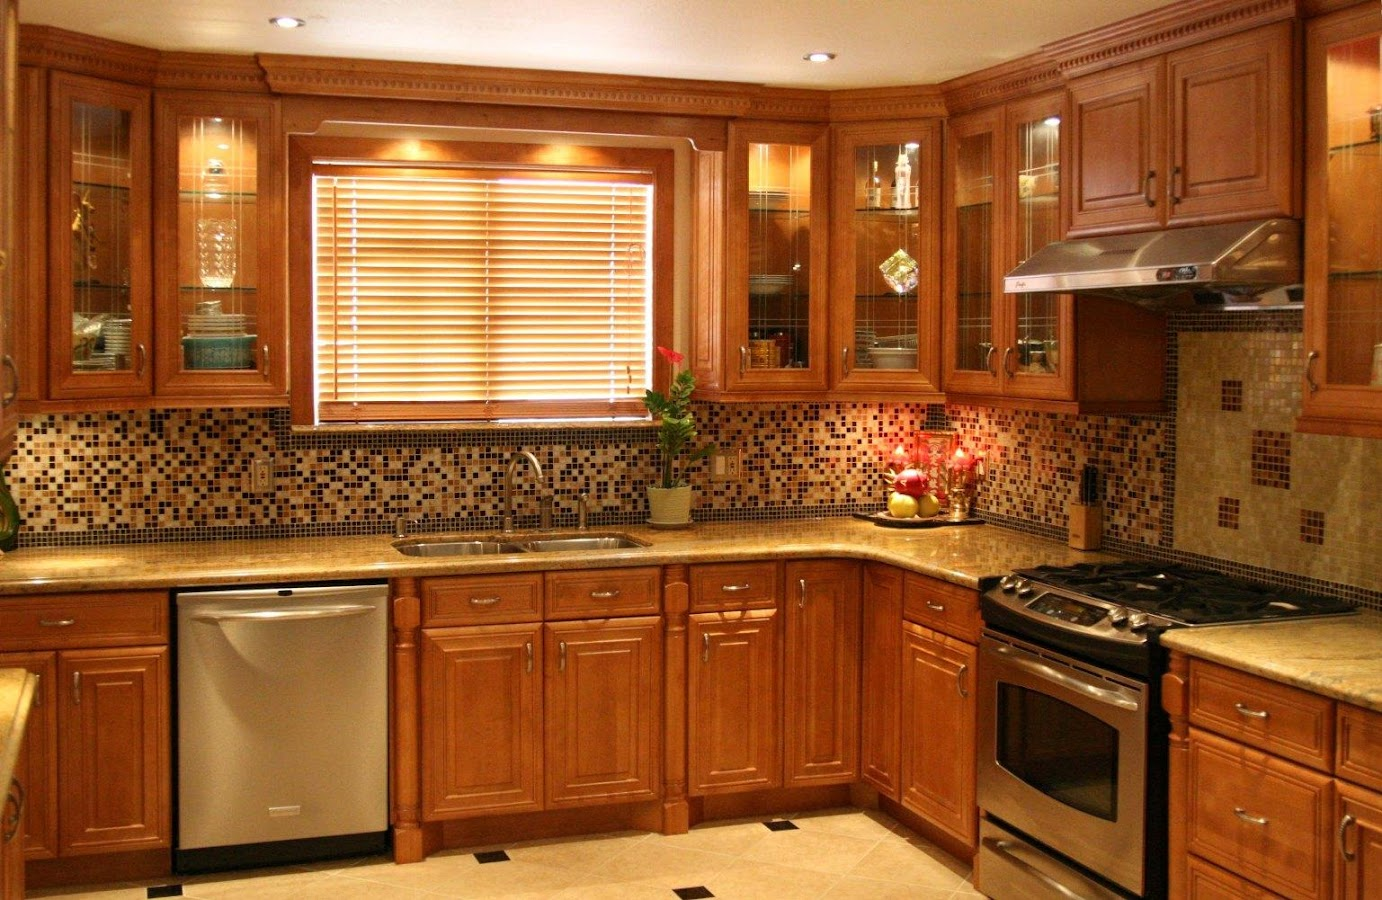 Kitchen Remodeling Idea Kitchen Remodeling Designs Android Apps On Google Play